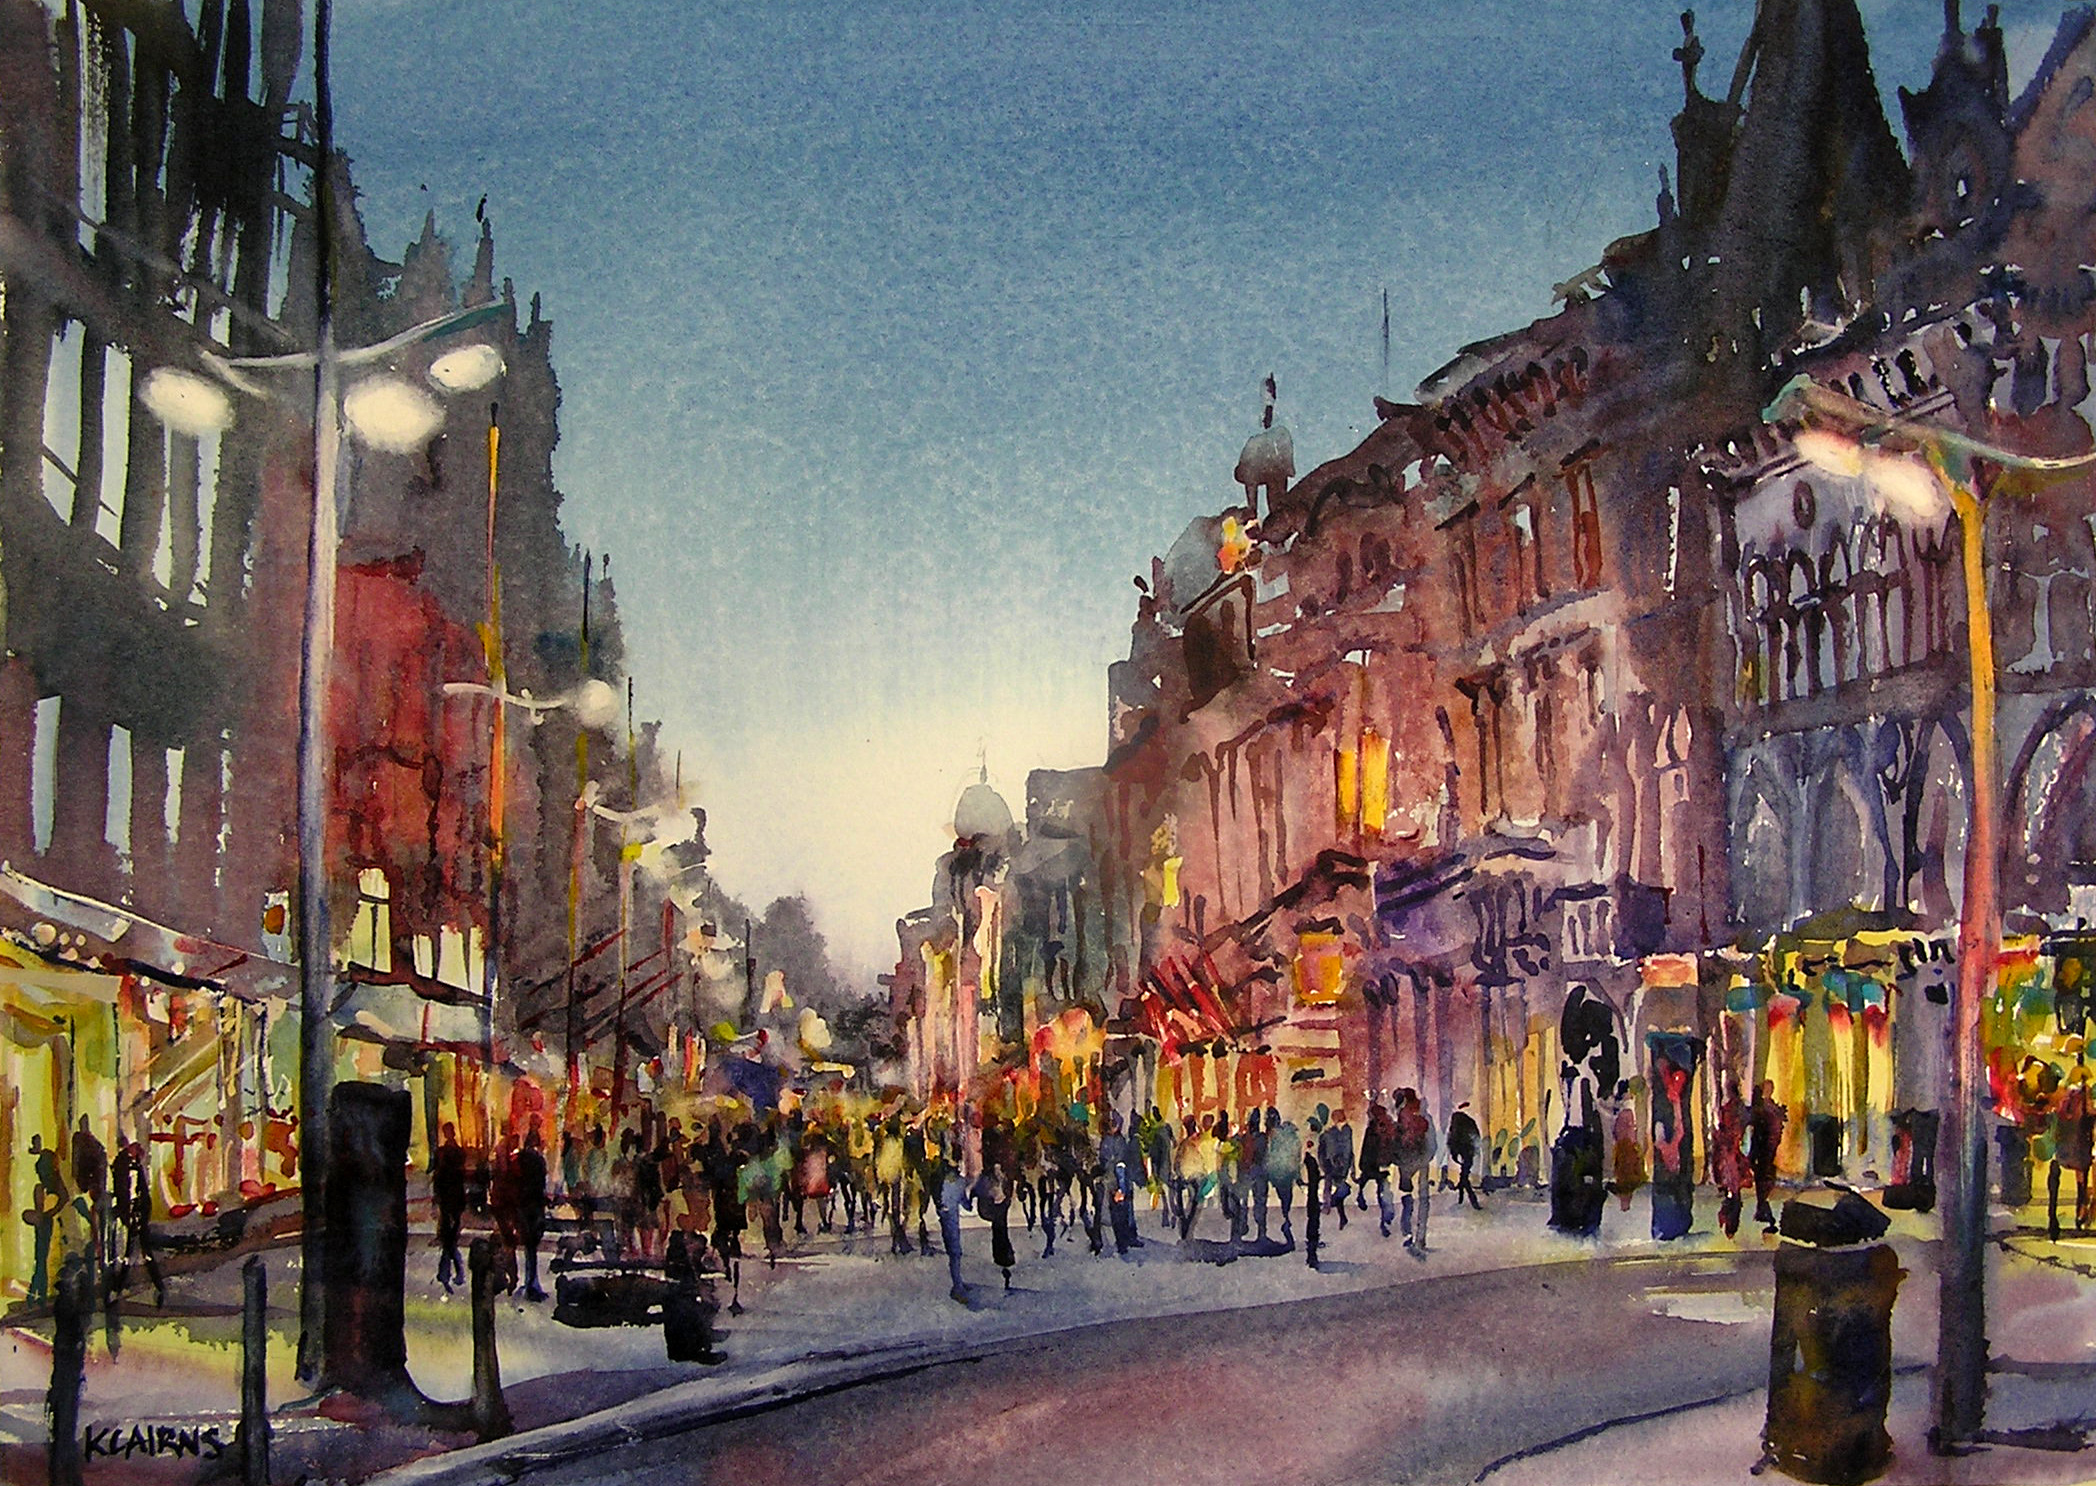 'Twilight Bustle, Buchanan Street' by artist Karen Cairns